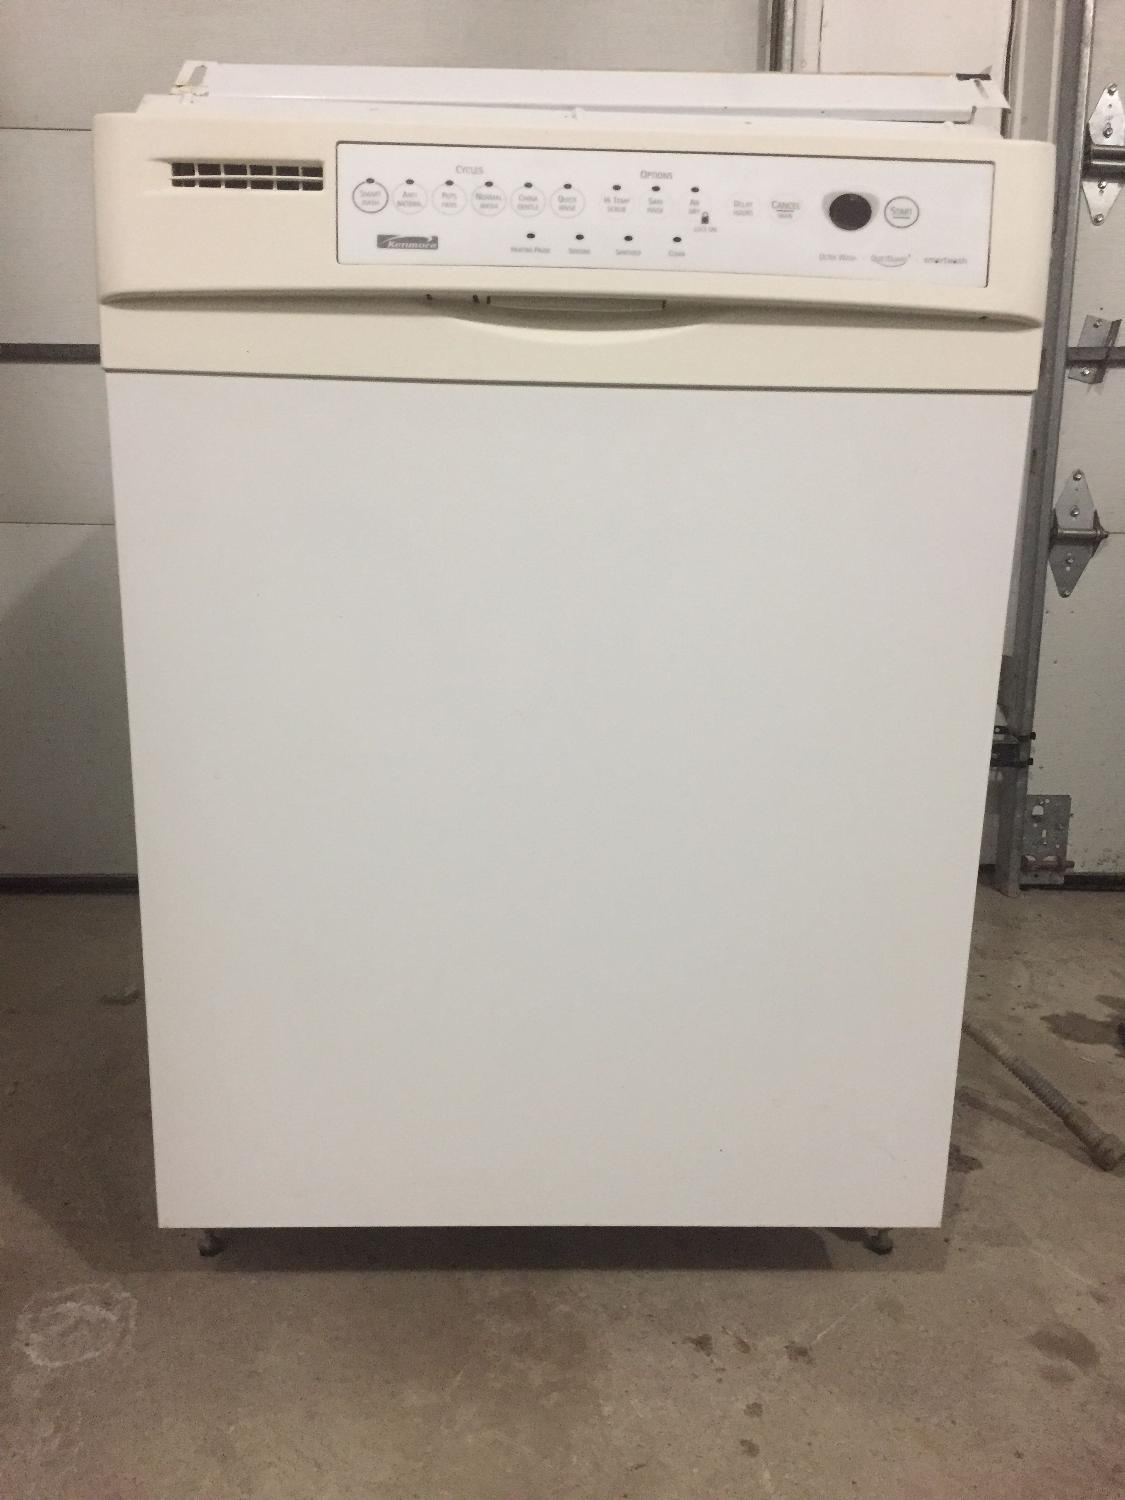 Best Kenmore Dishwasher Model 665 For Sale In Dollard Des